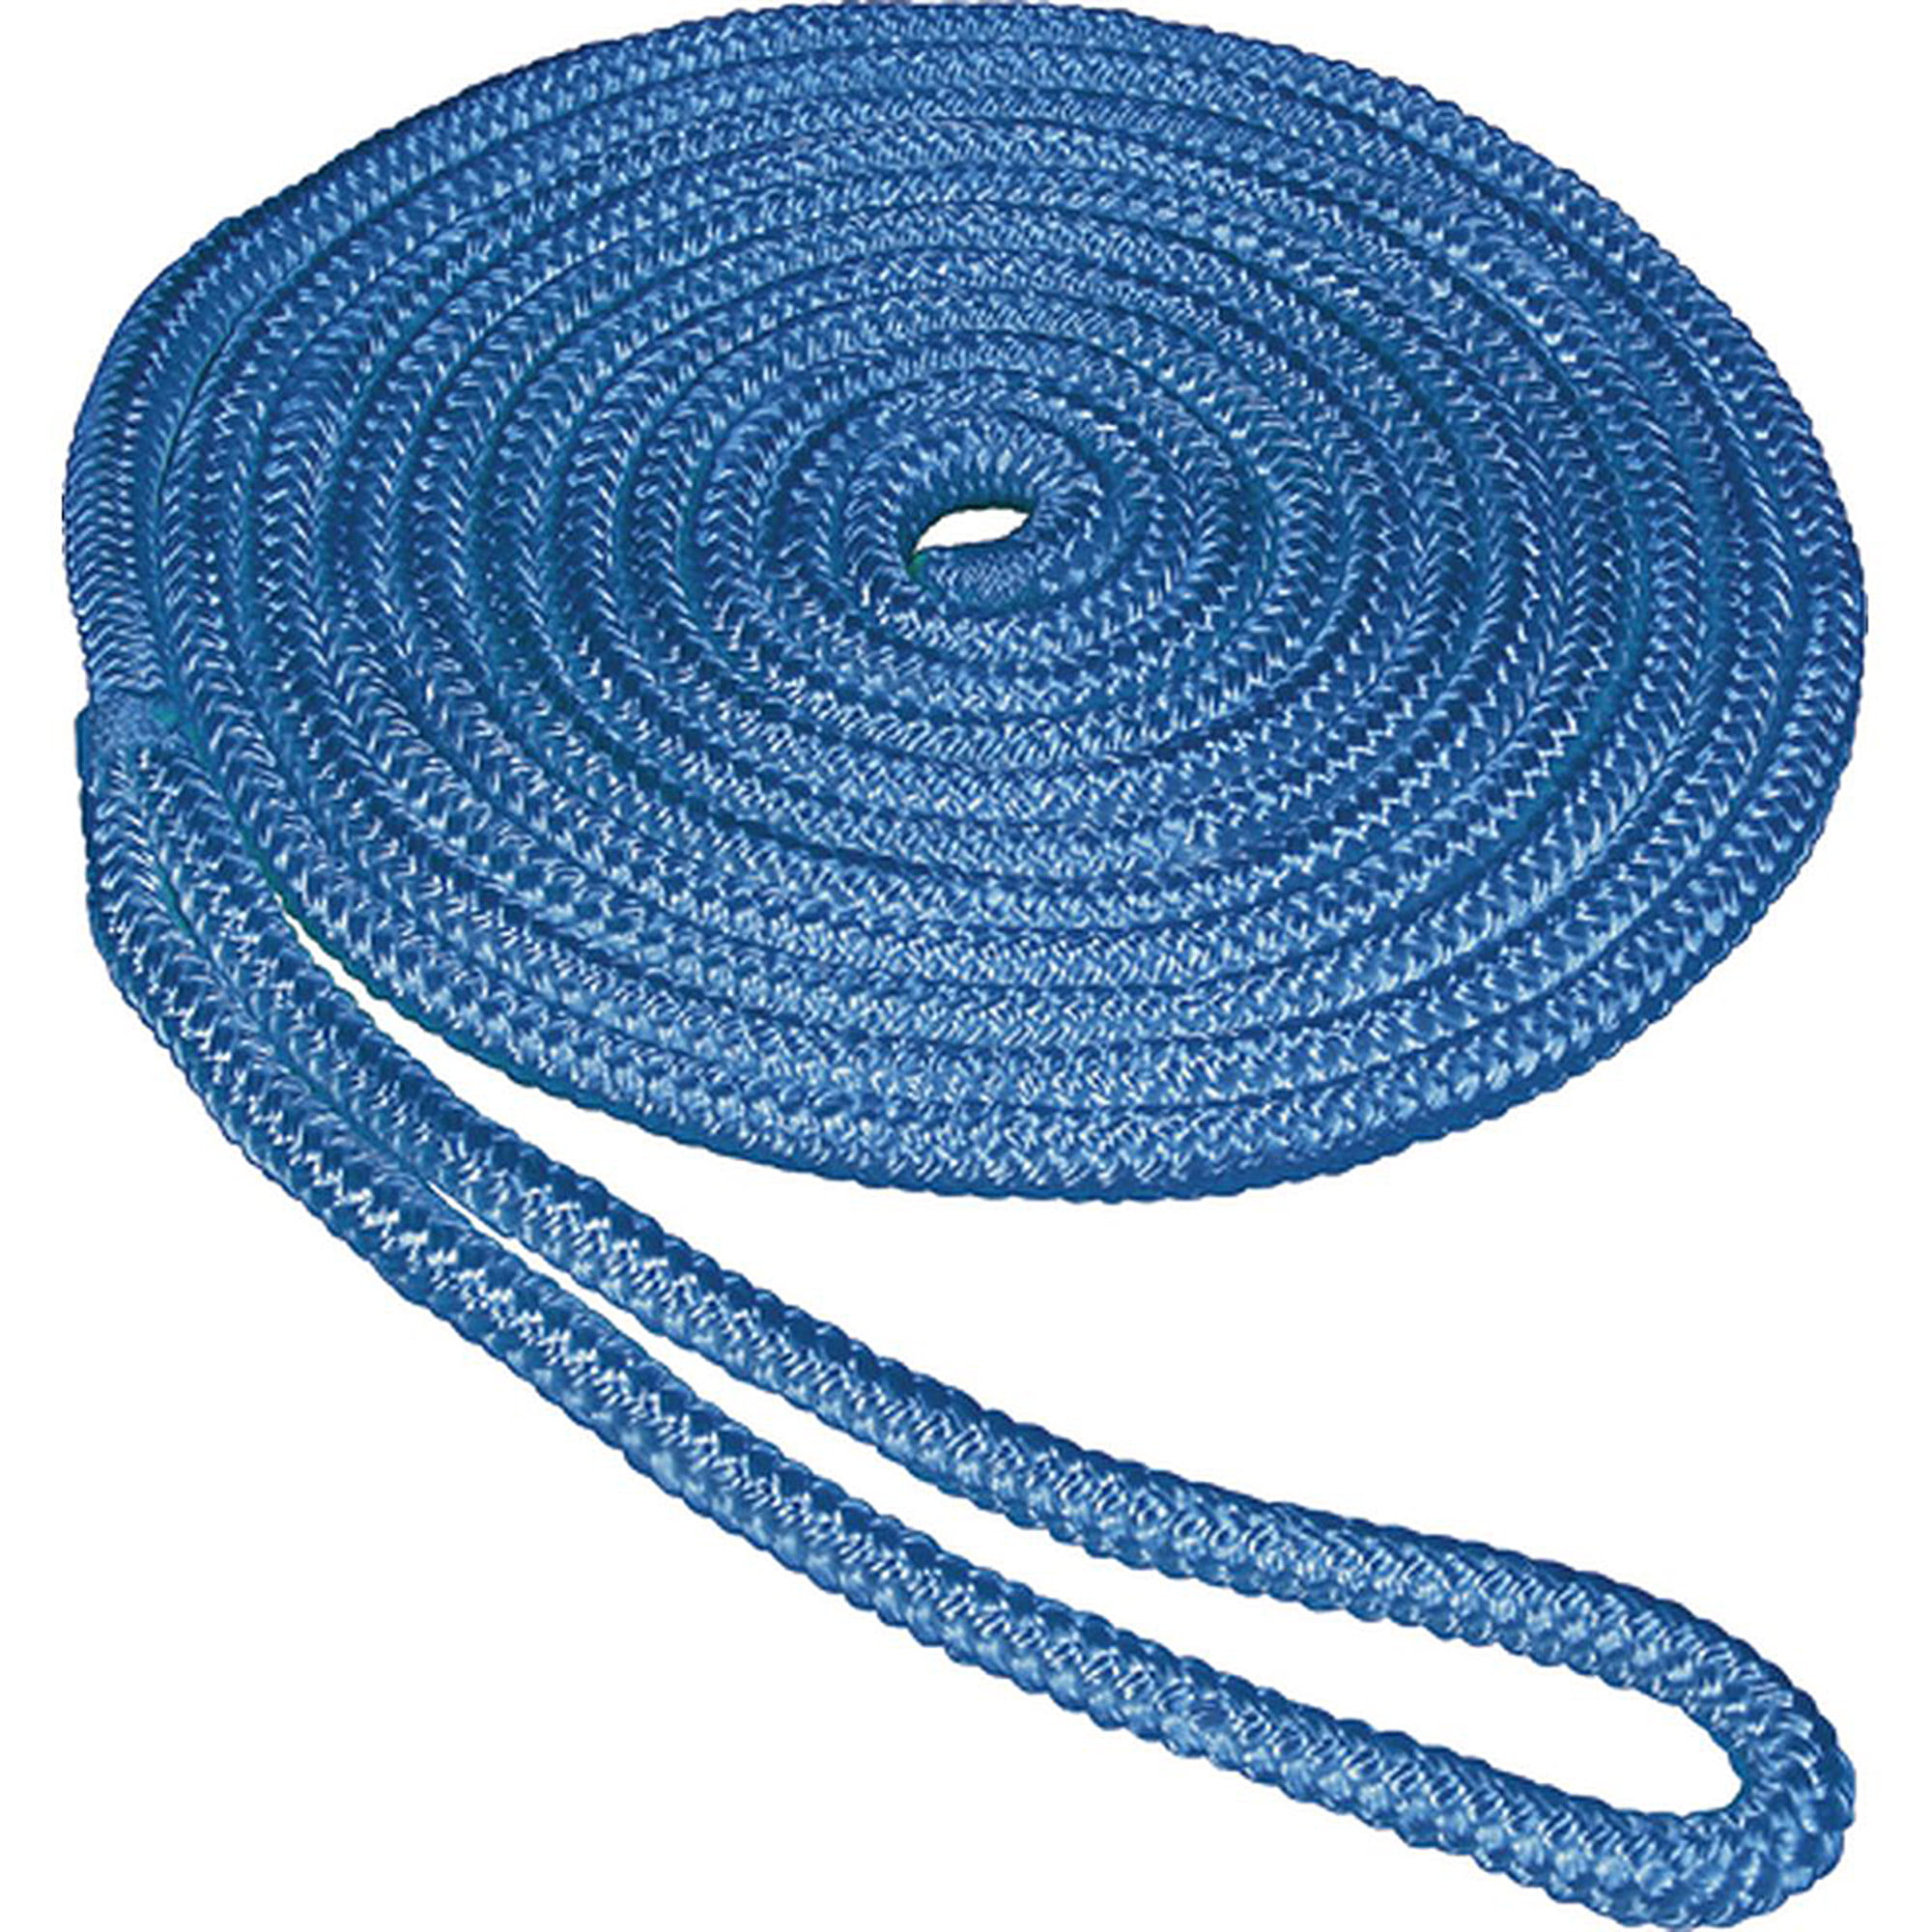 "SeaSense Double Braid Nylon Dock Line, 1 2"" x 35', 12"" Eye, Blue by Generic"